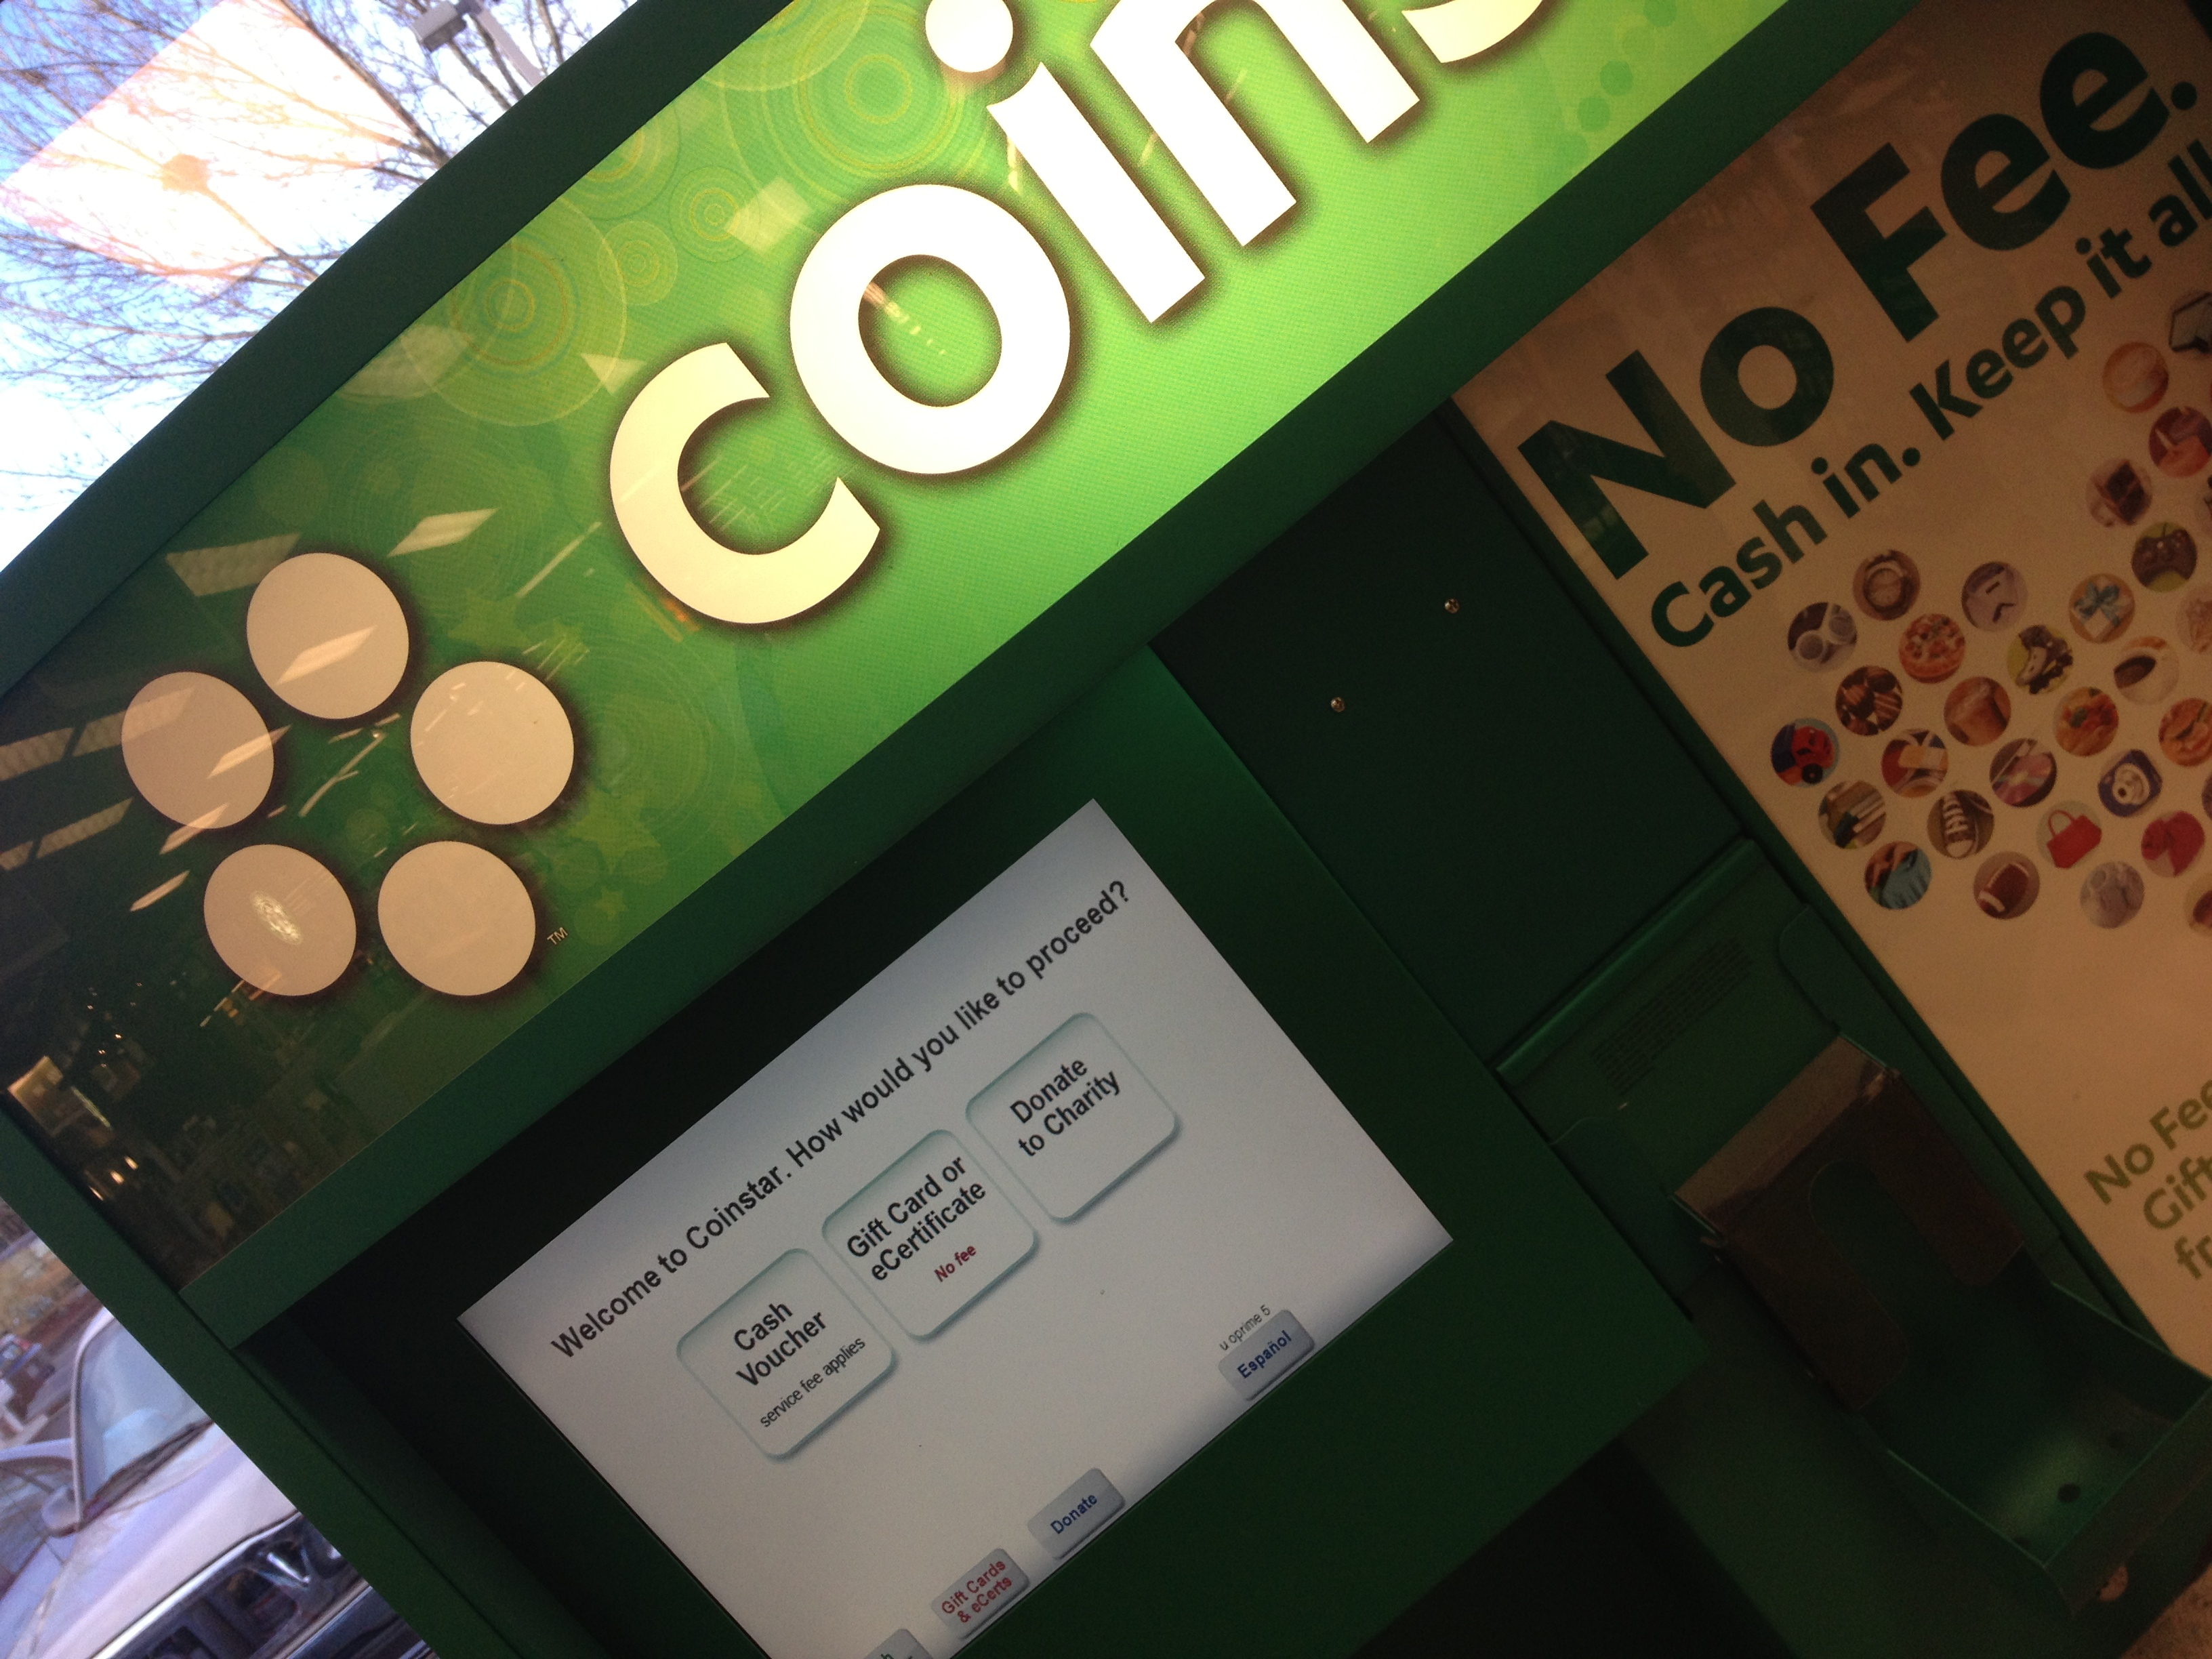 Find nearest coinstar restaurants : Funny cat pushing things